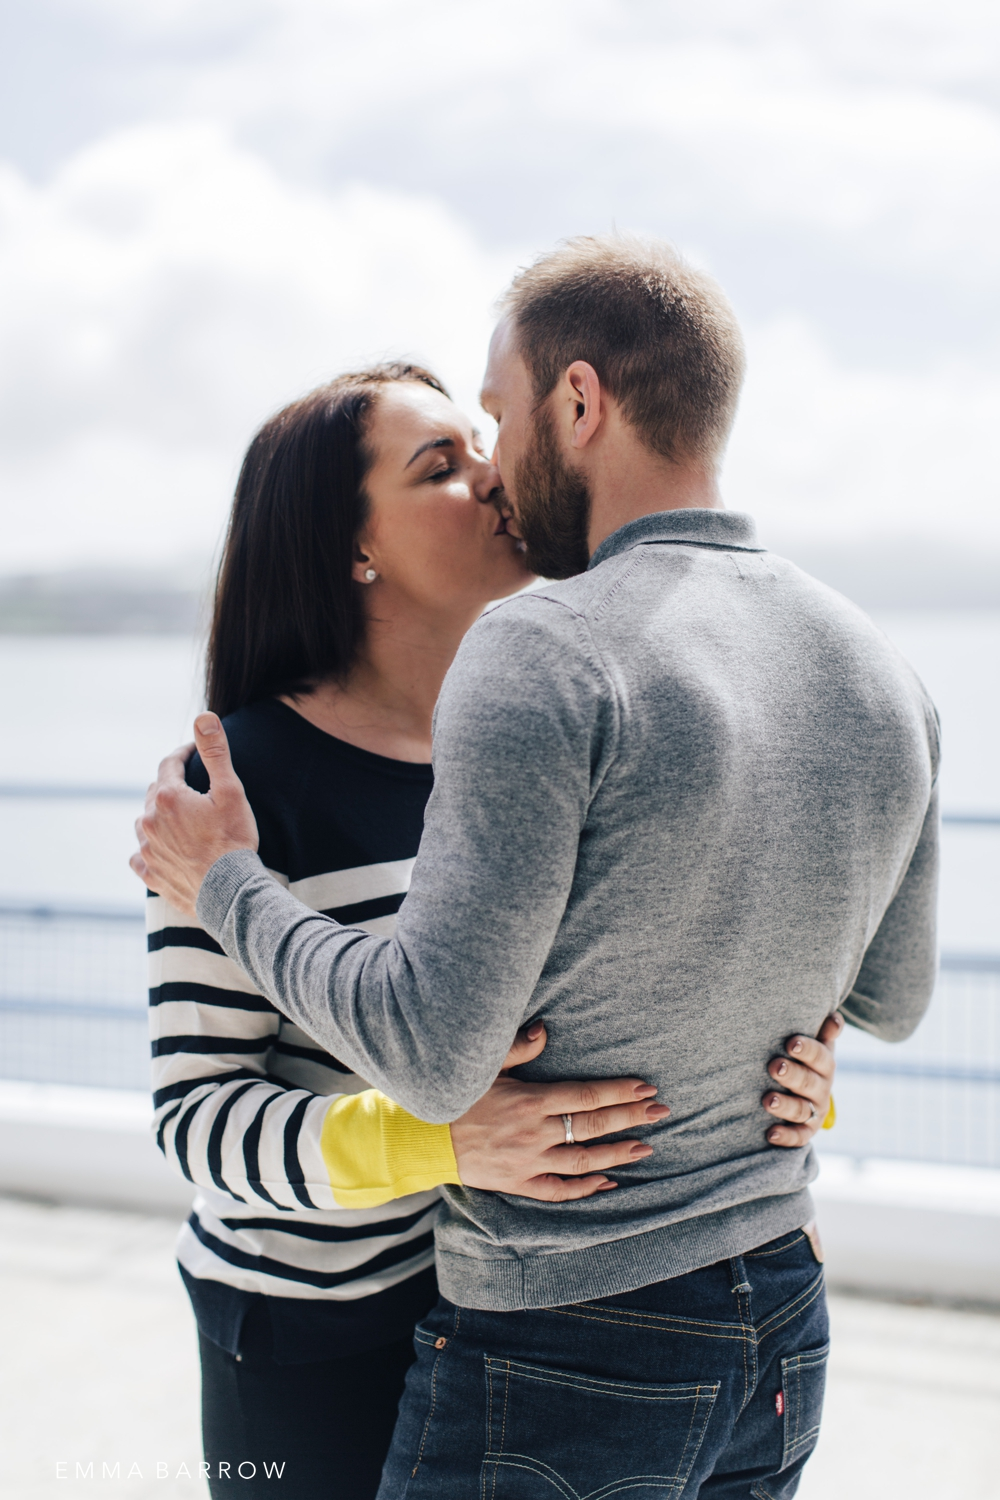 emmabarrow_rachroryPREWED-81.jpg